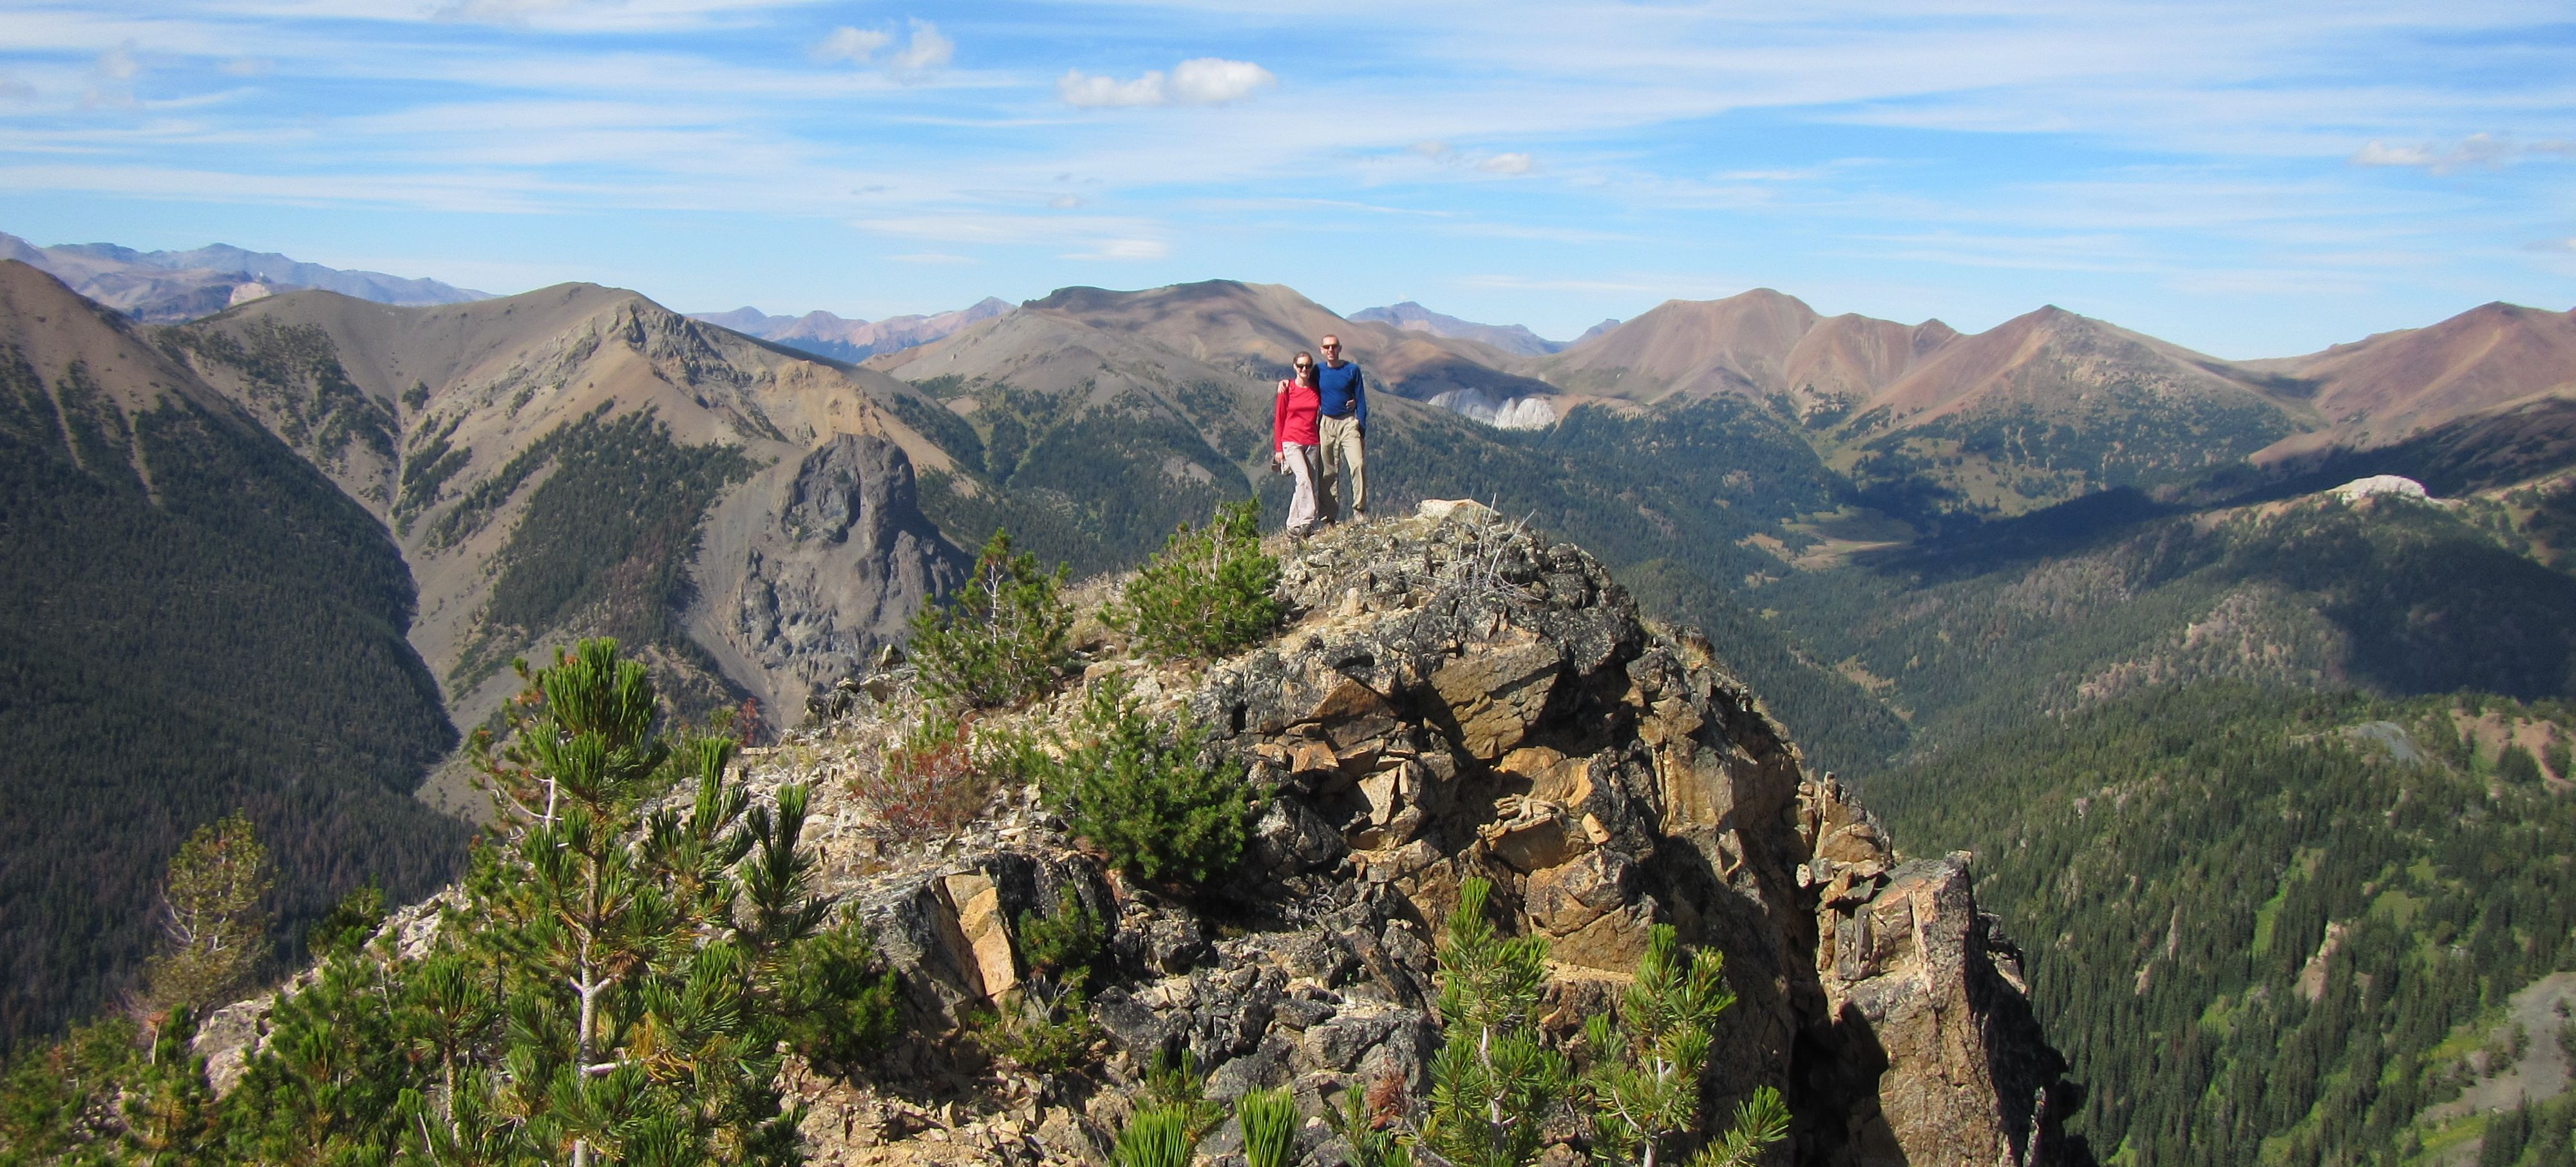 Geomatics consulting, hiking, and travel